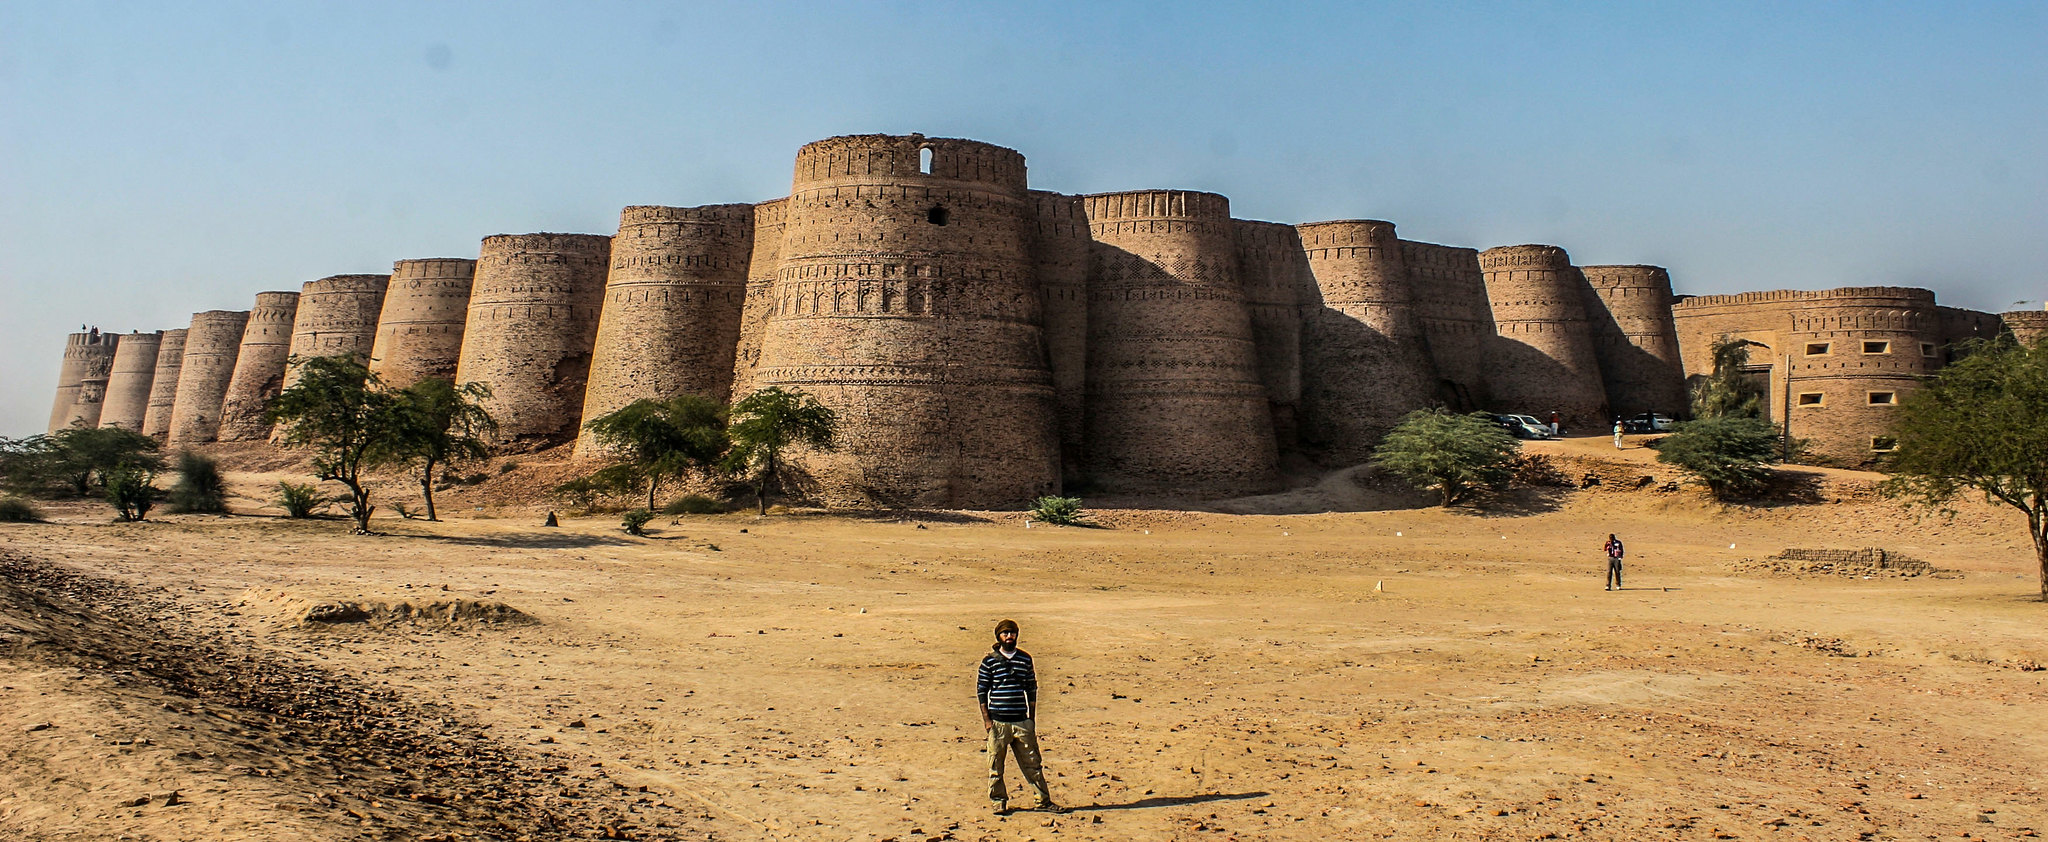 Derawar Fort Cholistan, Punjab Pakistan | Source: Reddit